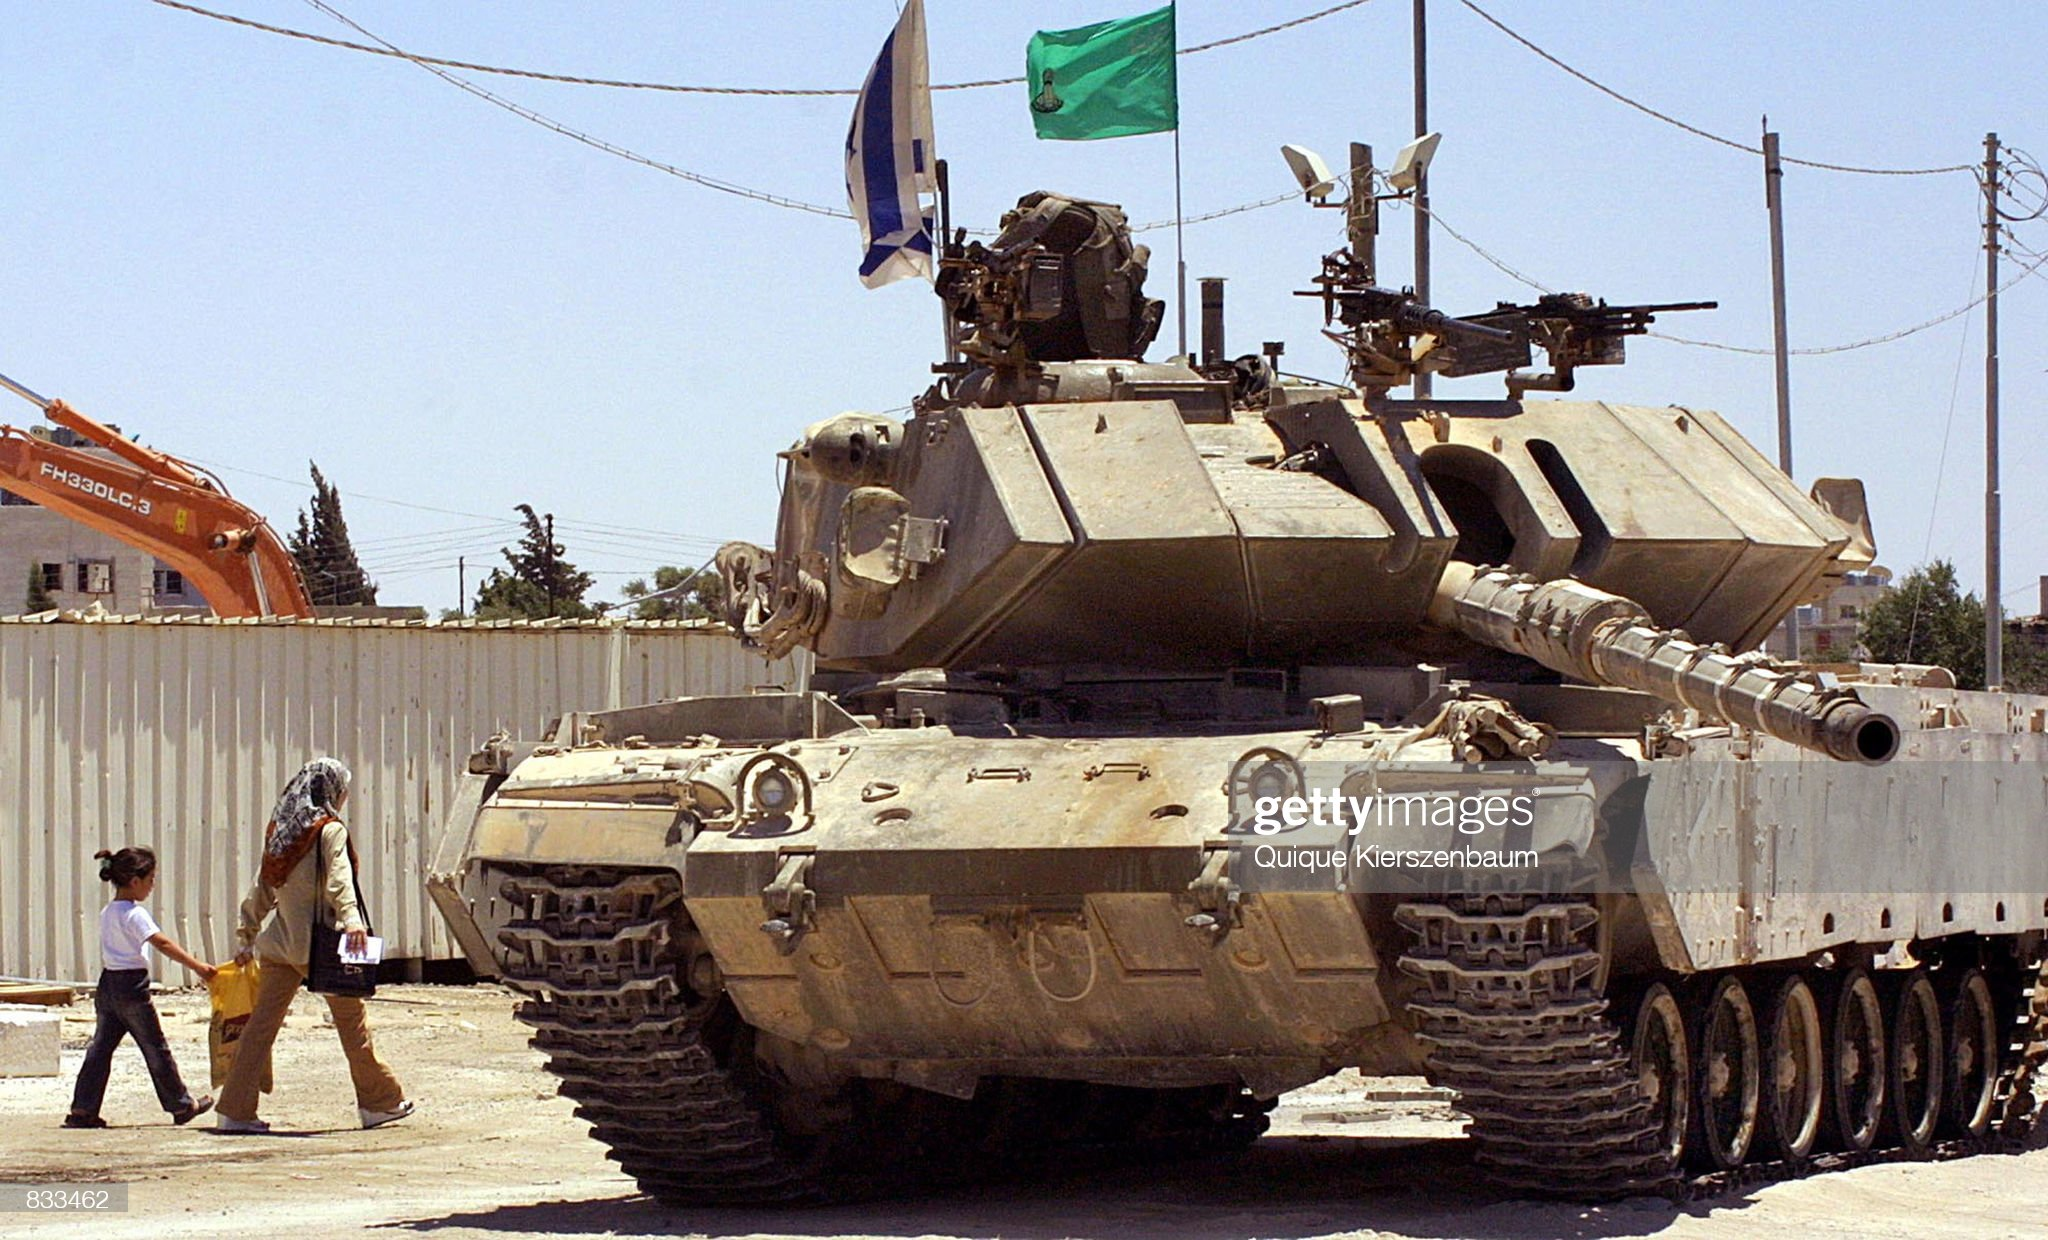 https://media.gettyimages.com/photos/palestinian-woman-and-her-daughter-pass-by-an-israeli-tank-as-they-picture-id833462?s=2048x2048